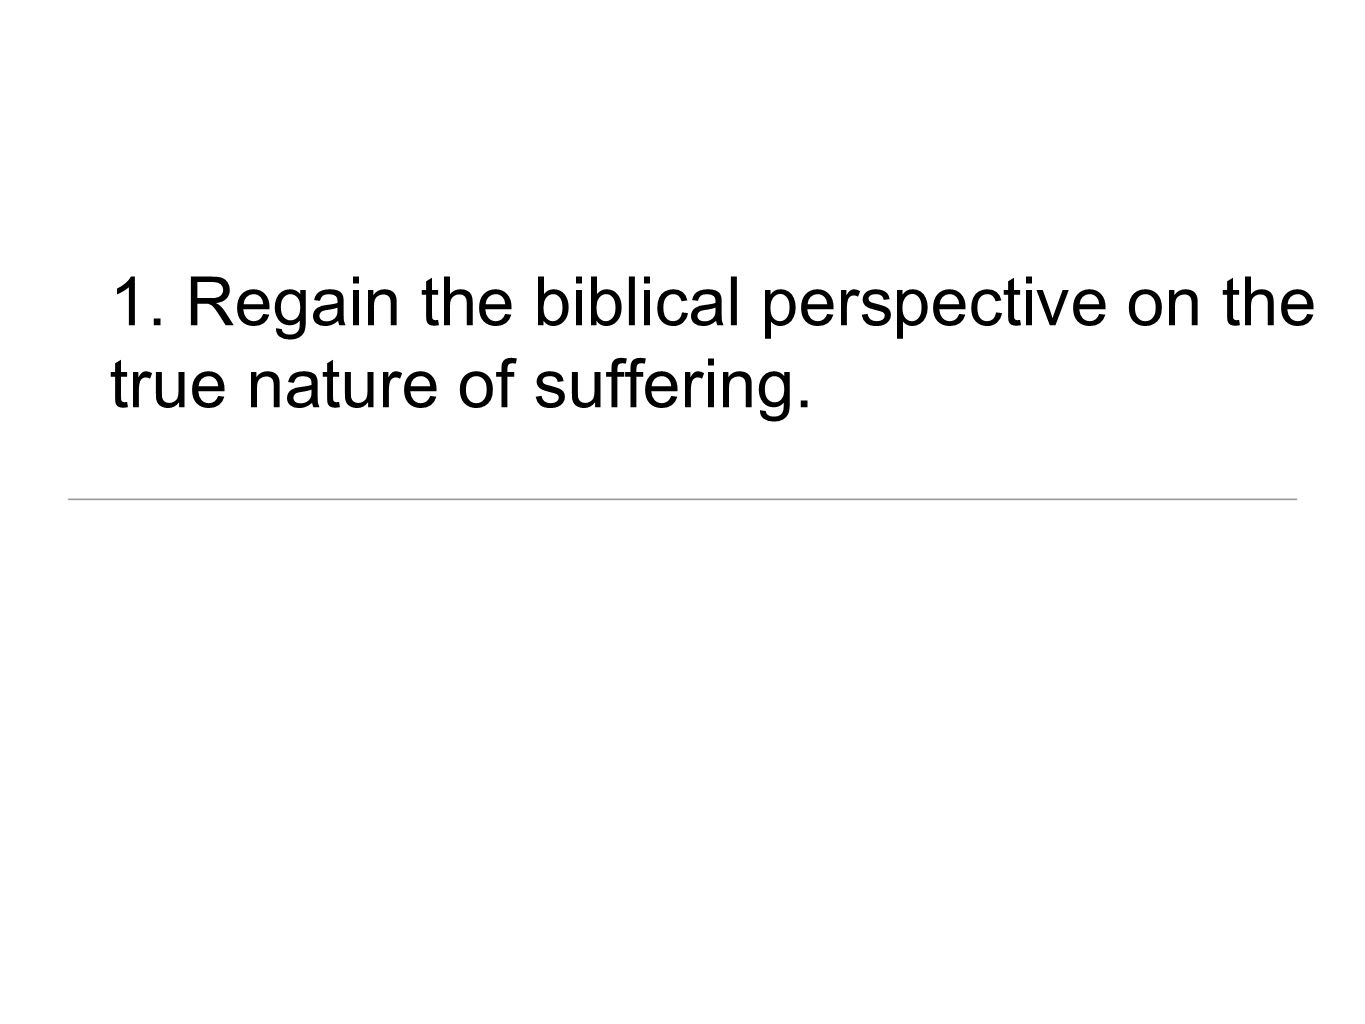 1. Regain the biblical perspective on the true nature of suffering.